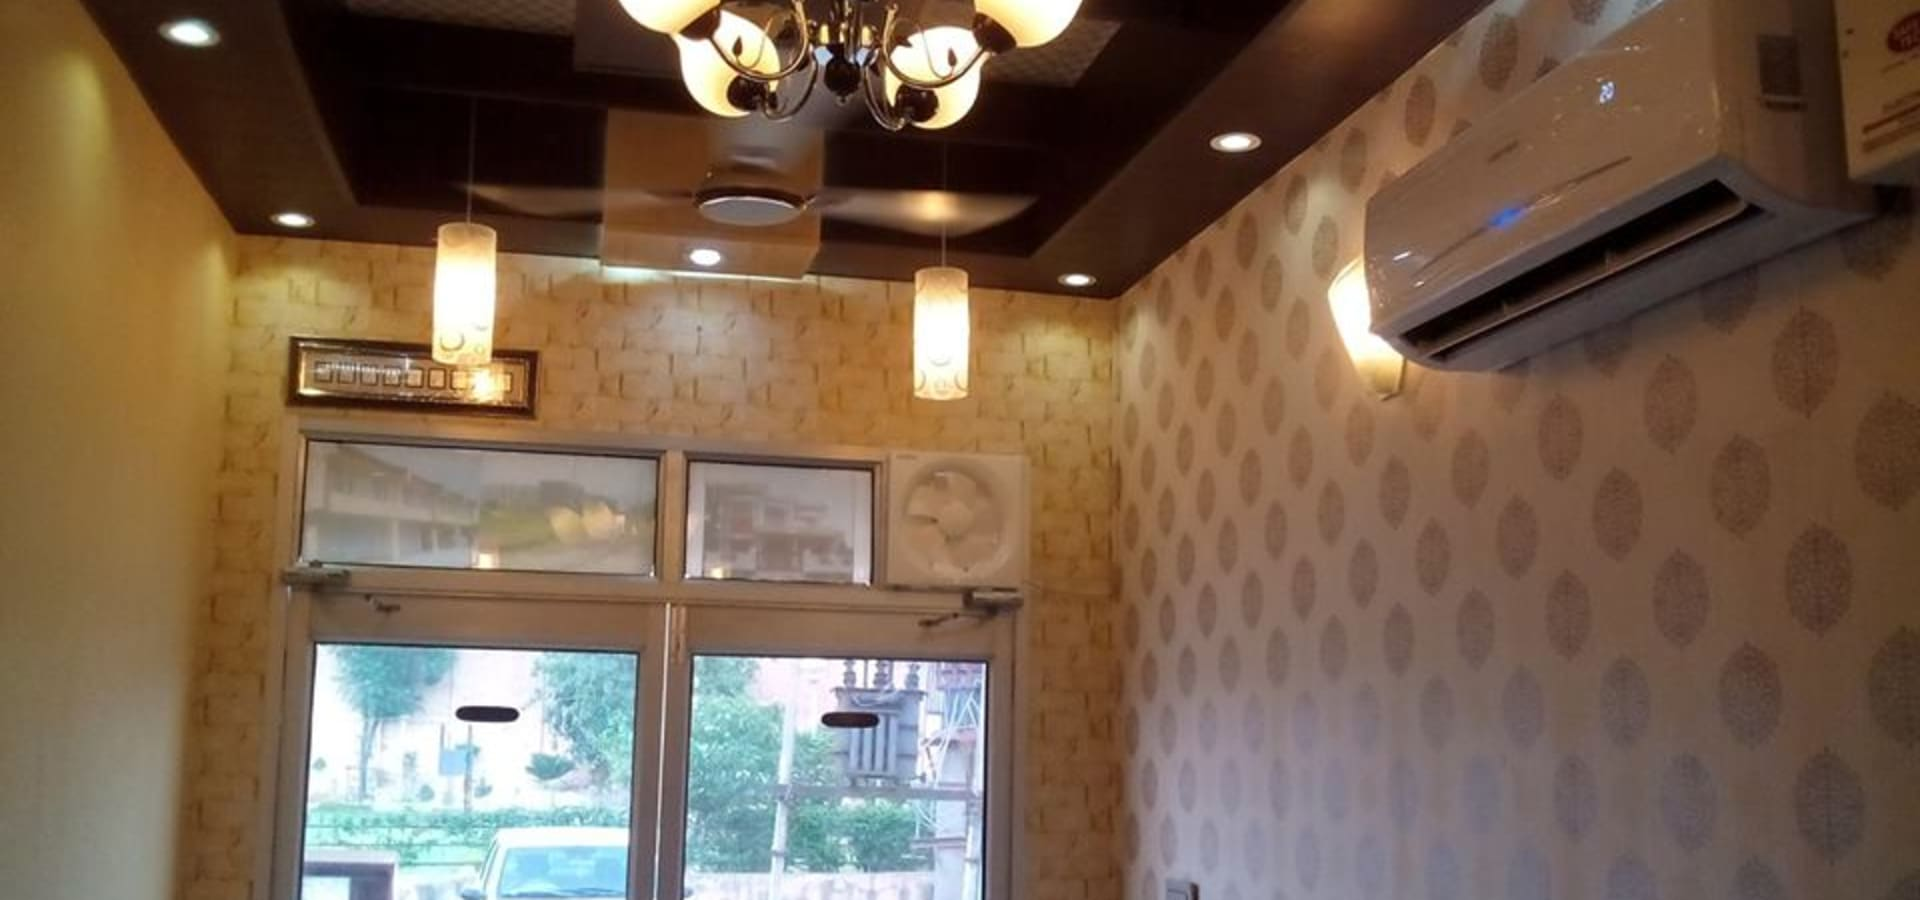 Ceiling And Wall Designing Using Pvc